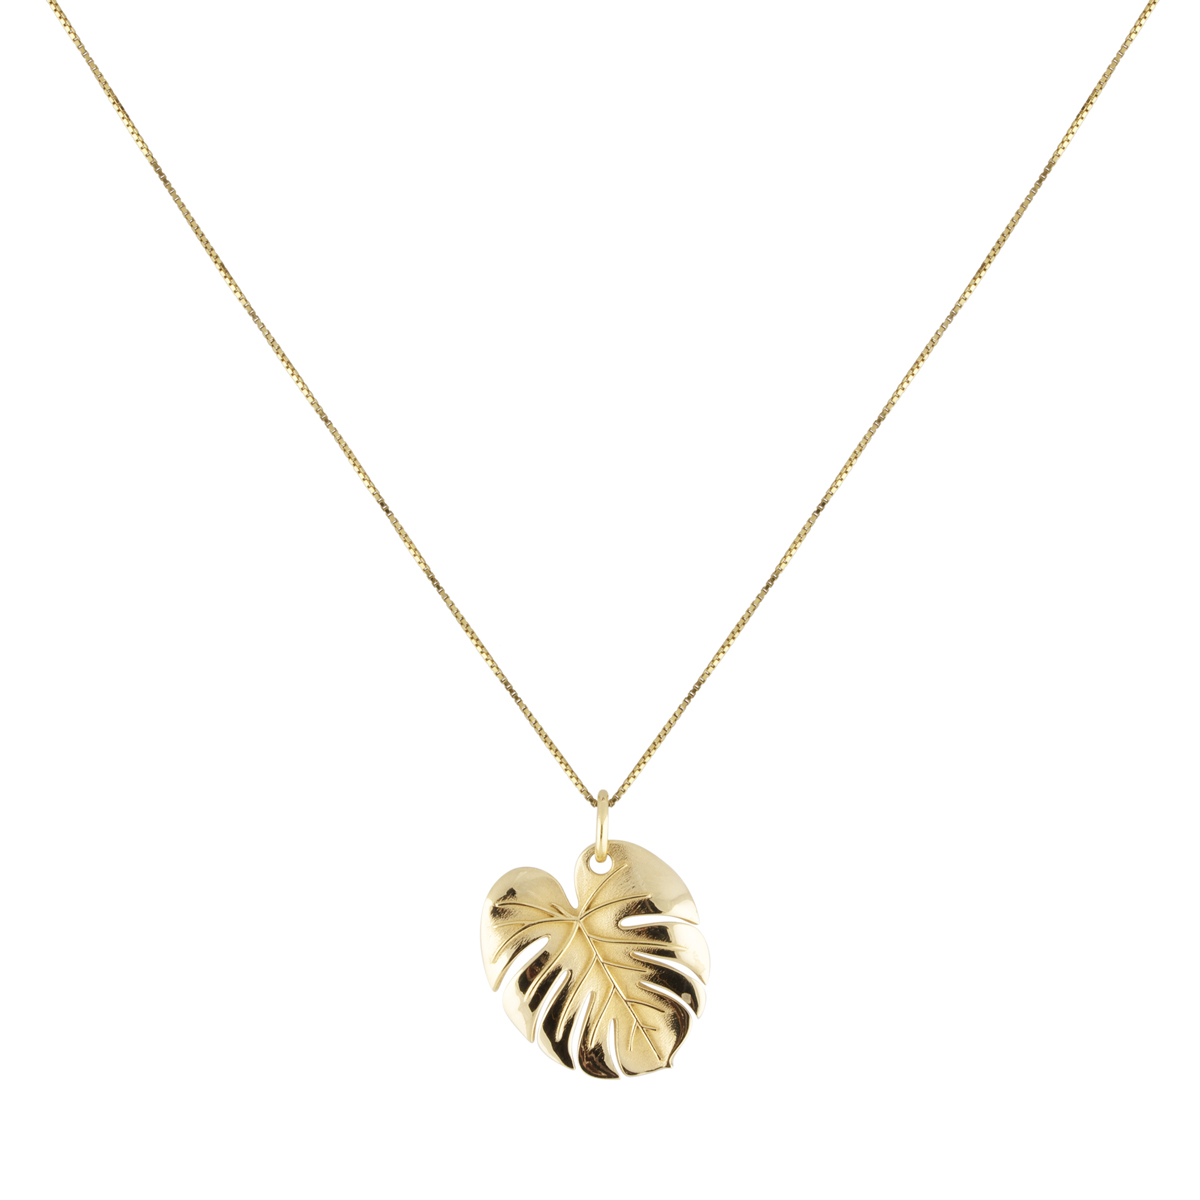 PALM LEAF NECKLACE GOLD i gruppen HALSBAND hos EMMA ISRAELSSON (neck102)